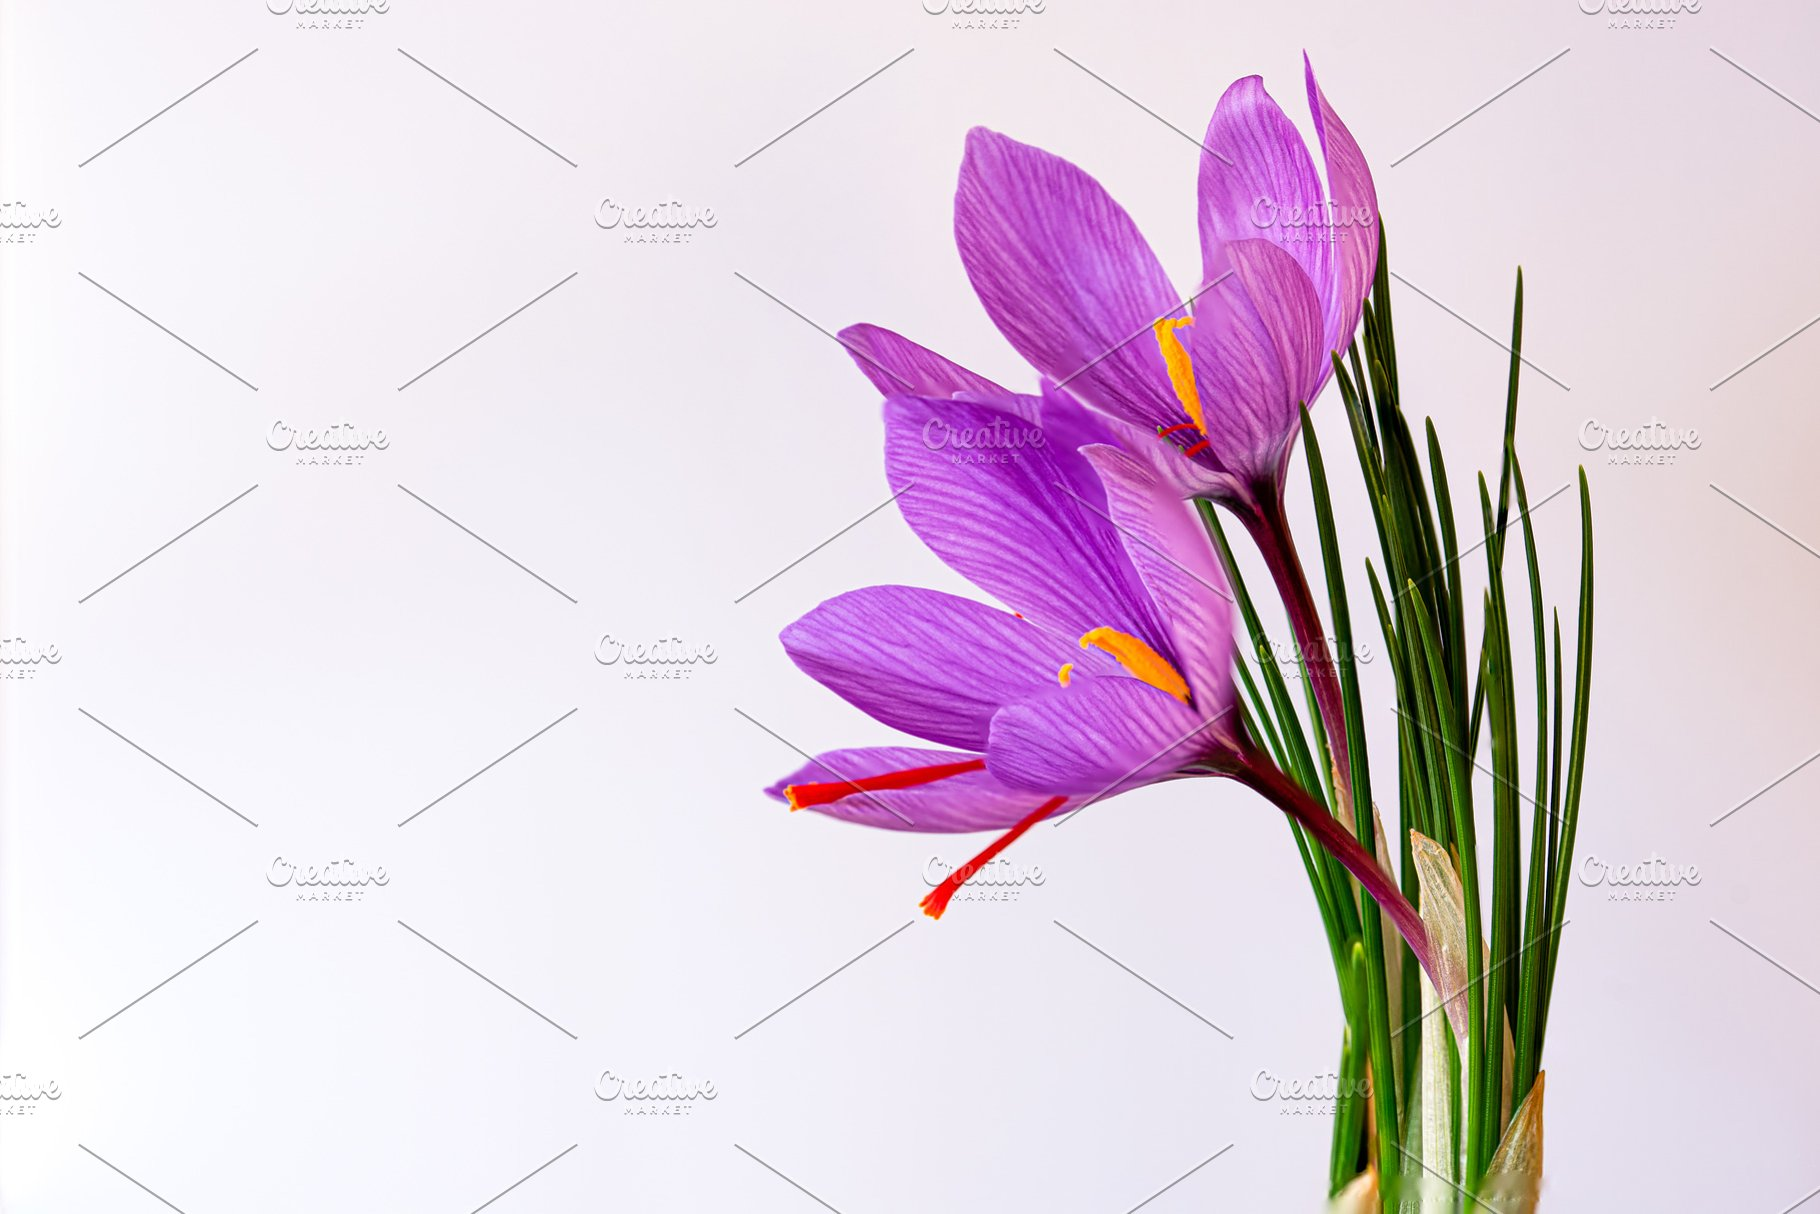 Saffron Flower Over White Background High Quality Food Images